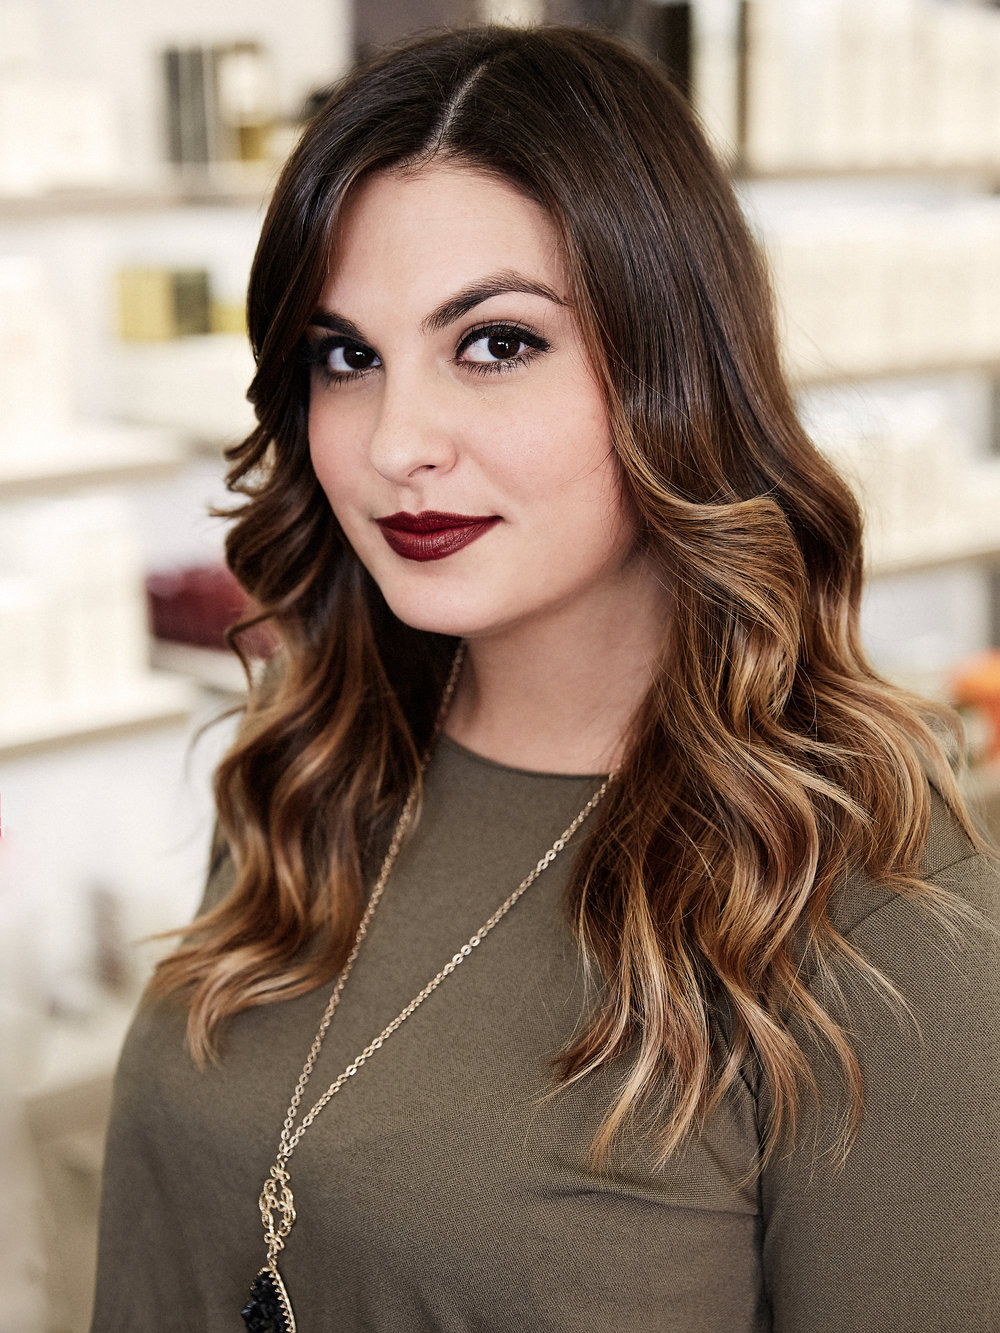 ANASTASIA   Anastasia has worked for 6 years in the beauty industry, the last 5 of which at Butterfly Studio Salon. Anastasia's major source of hair-color inspiration is the changing of the seasons. All beauty trends shift seasonally, and hair upgrades are the most important for reinvigorating a look. Anastasia loves talking to her clients about current trends and techniques. To her, learning and giving back through education is what makes this industry so special, which is why she dedicates time to mentoring young artists in the beauty industry.   @anastasiageorgas